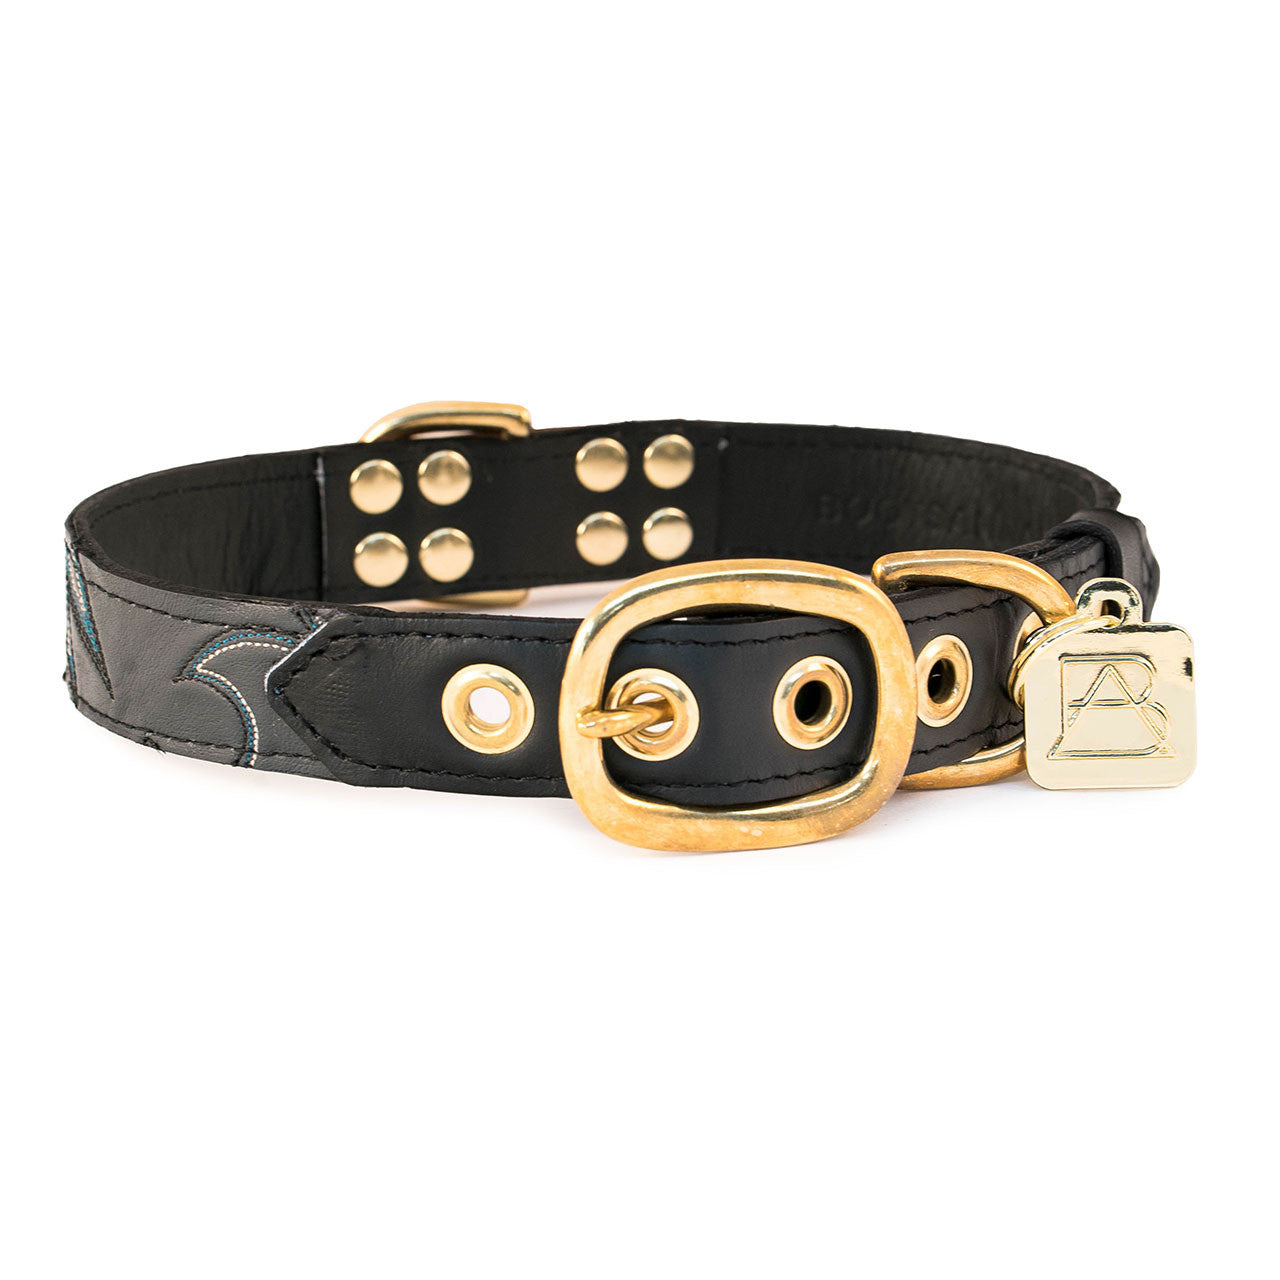 Black Dog Collar with Dark Gray Leather + Black, Blue and Ivory Stitching